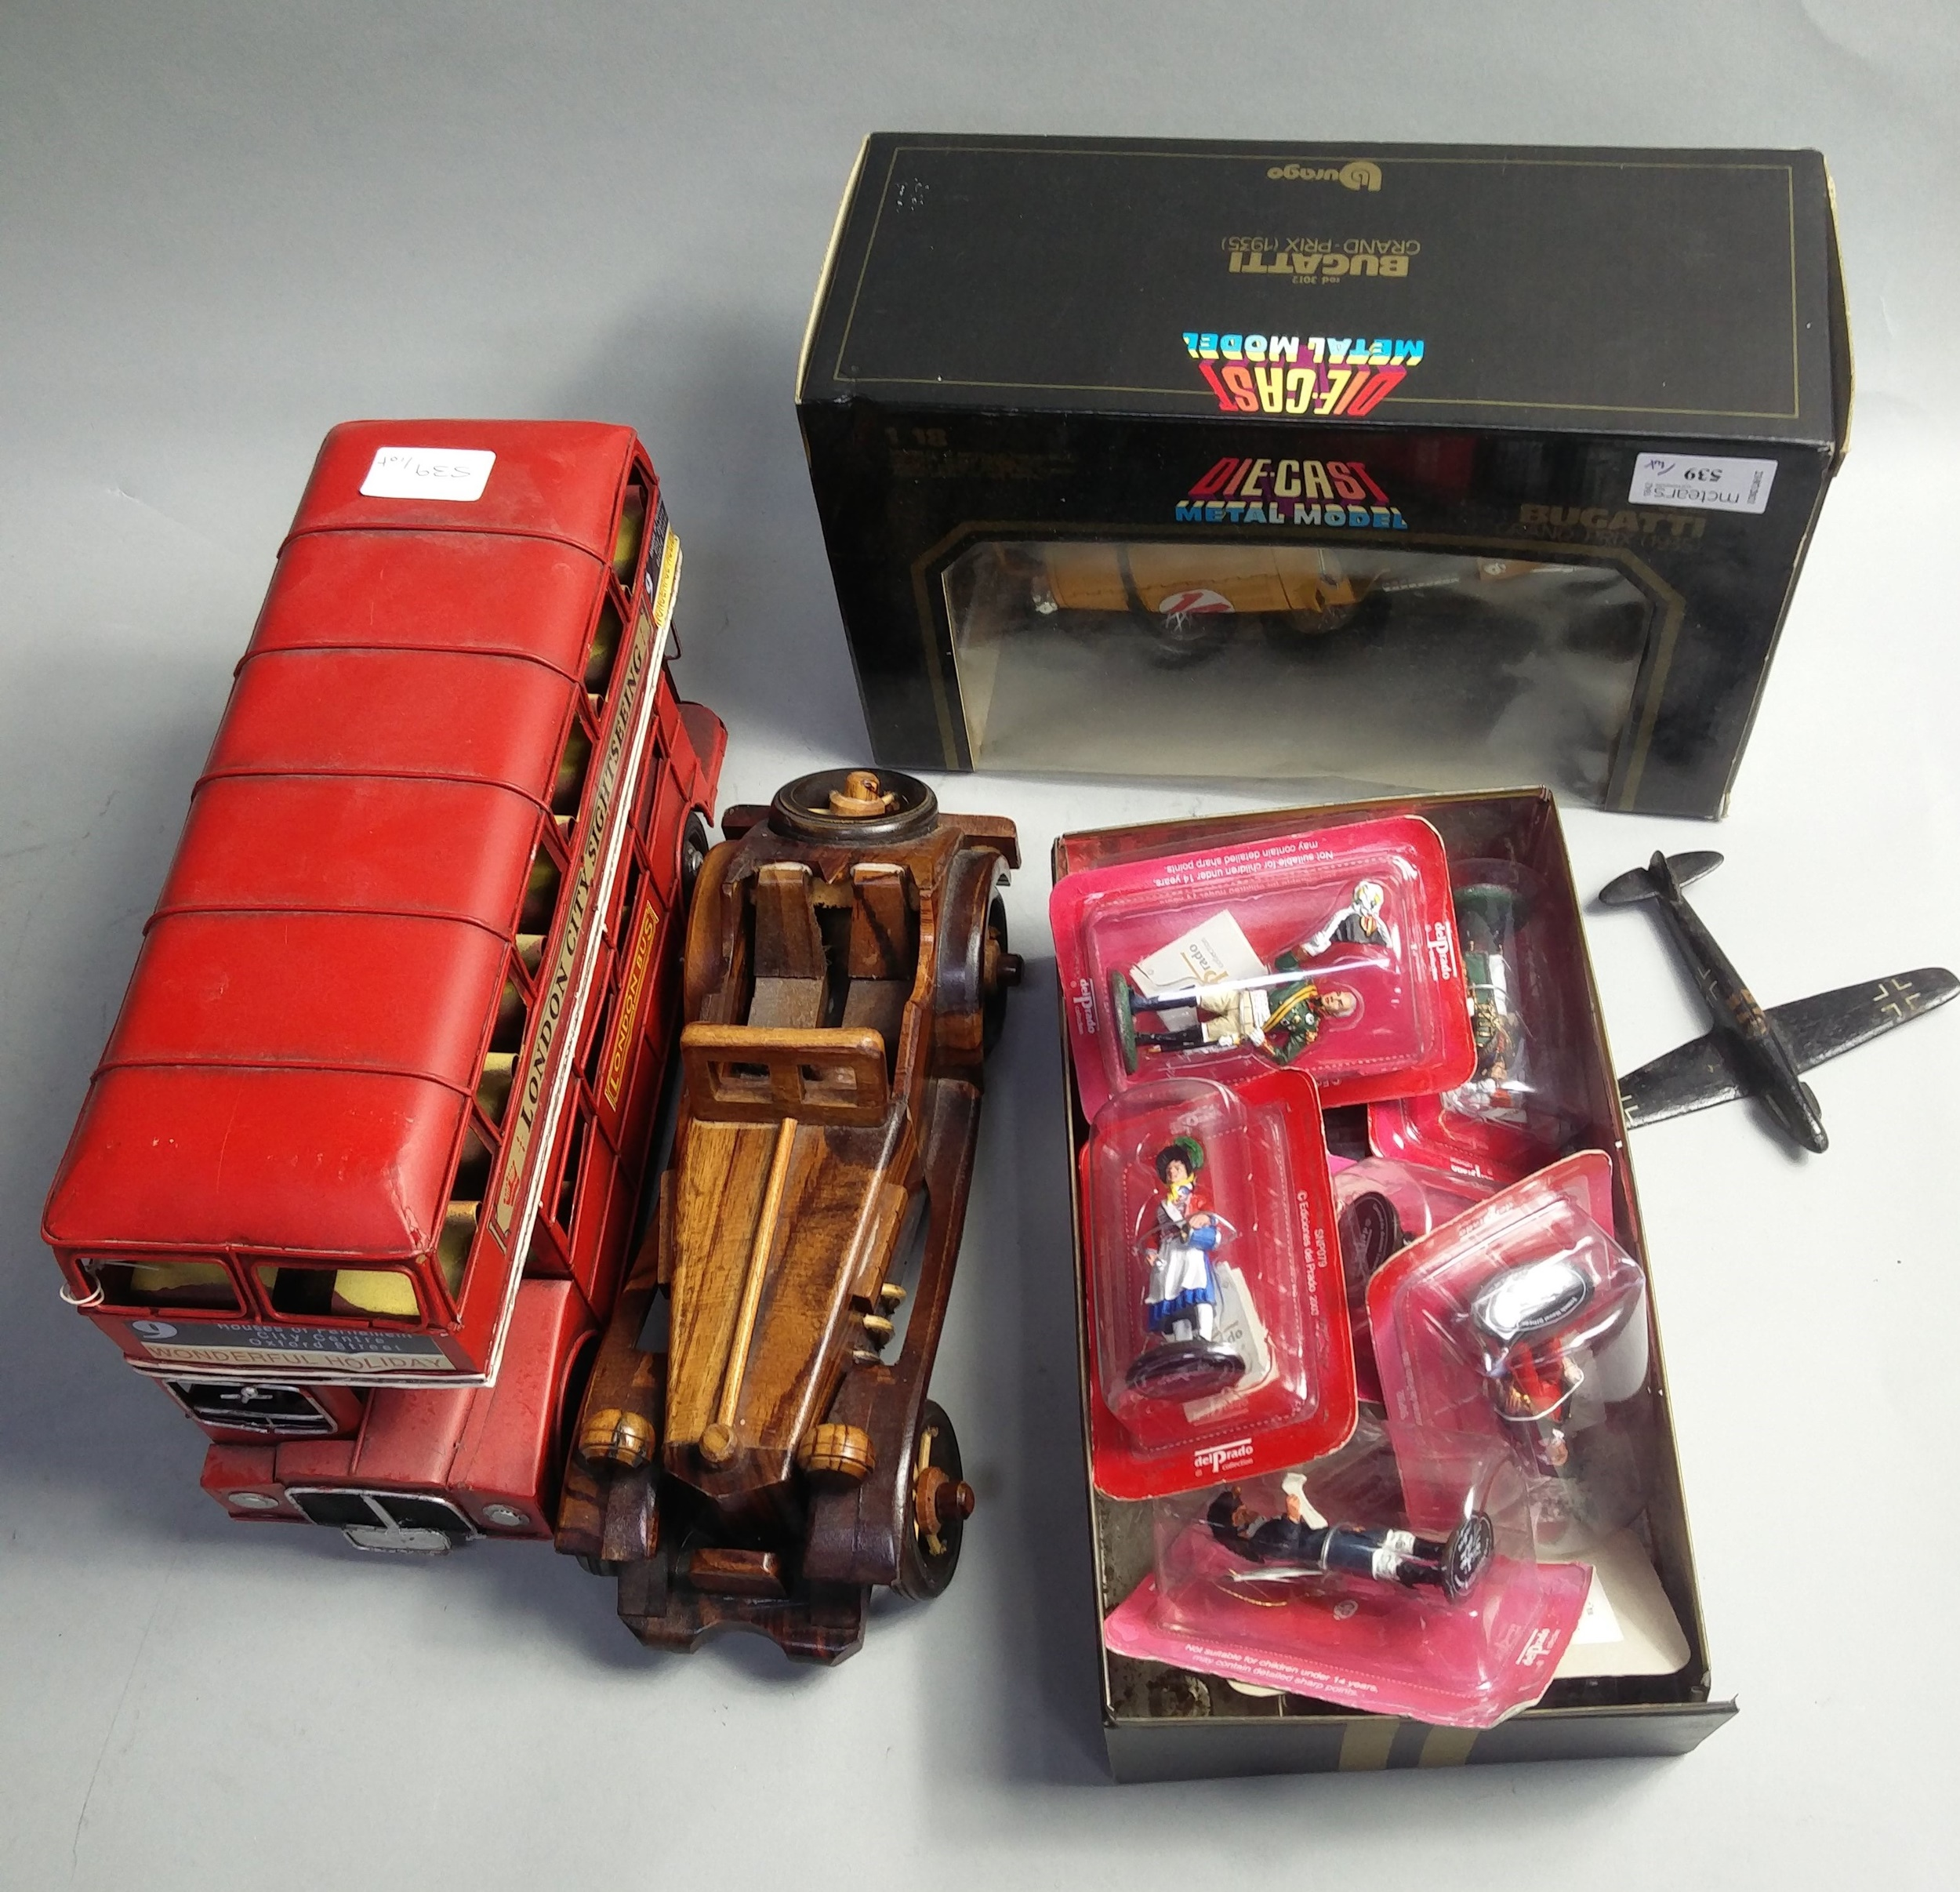 A DIE CAST MODEL OF A BUGATTI AND OTHER TOYS - Image 2 of 2